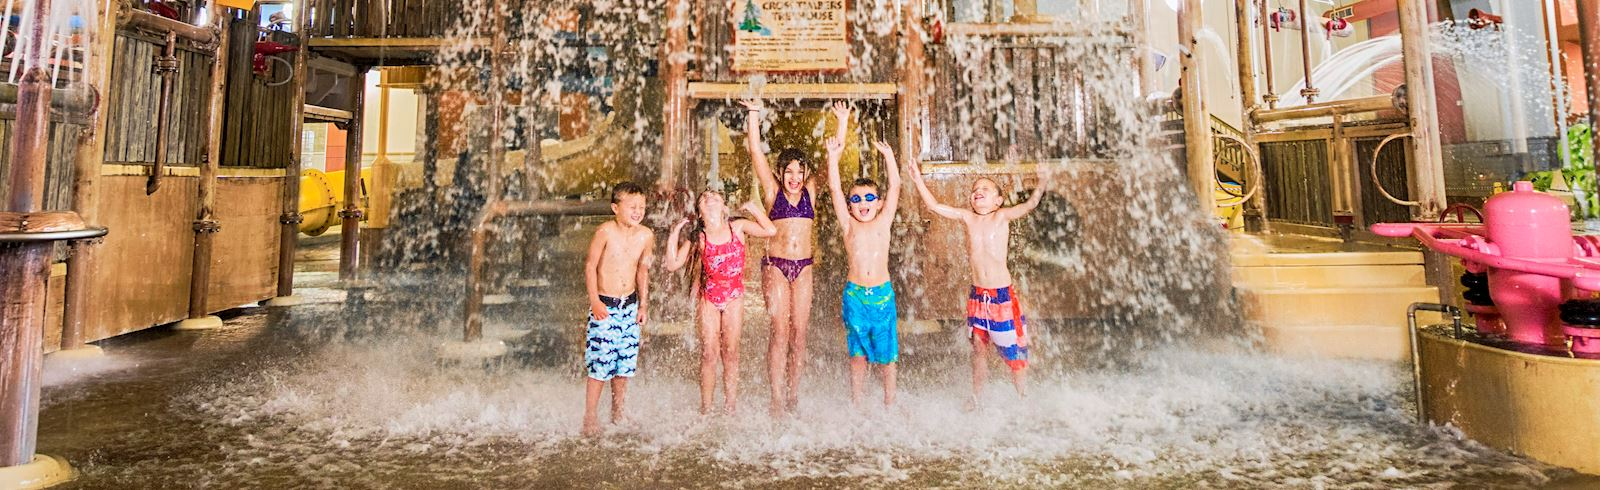 Jolly Mon Water Park at Margaritaville Lake Resort, Osage Beach